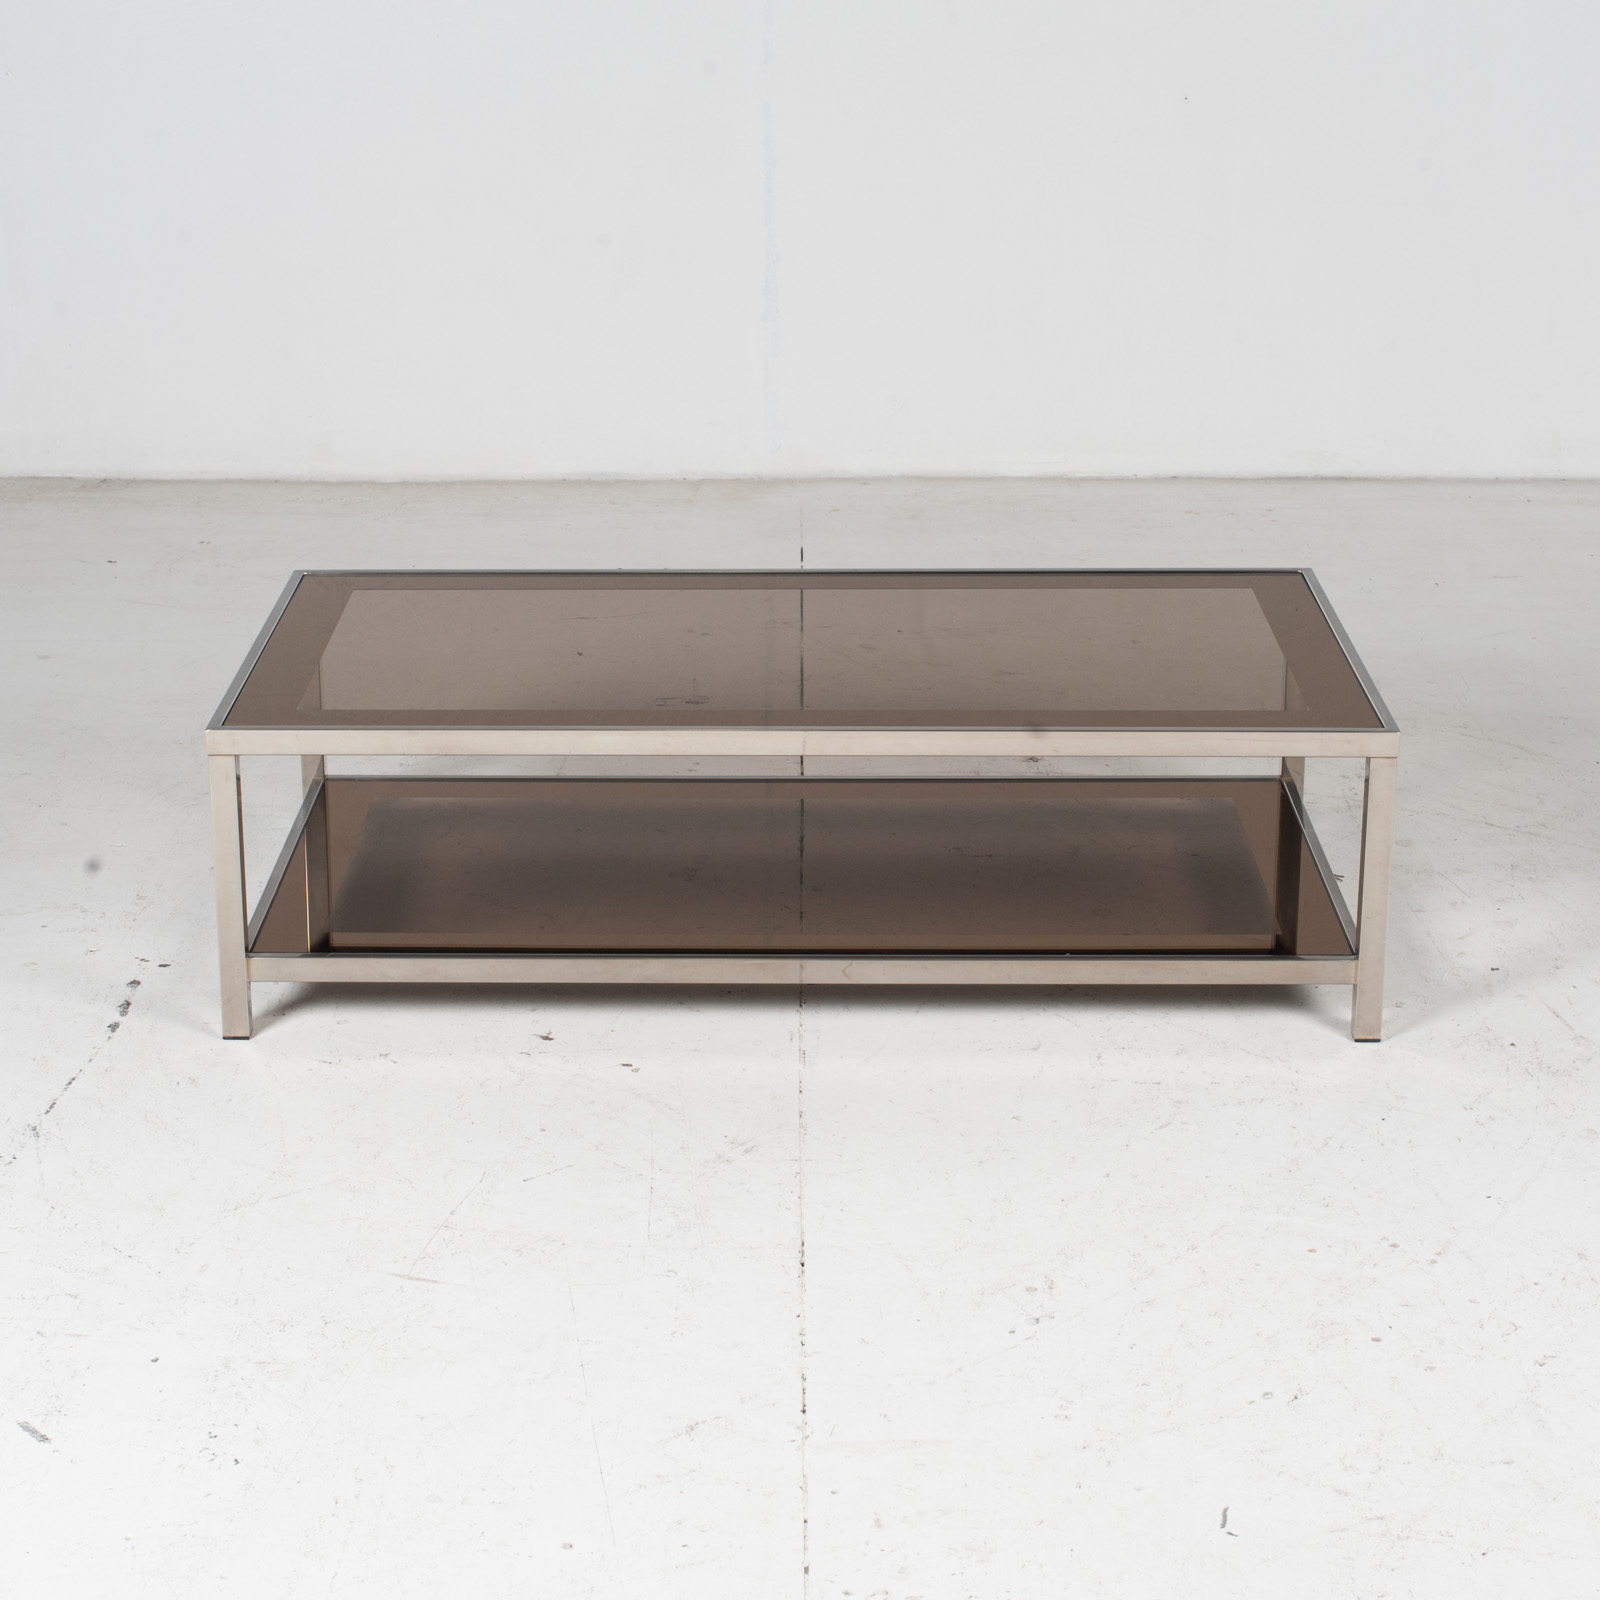 Coffee Table By Belgo Chrome In Smoked Glass, 1970s, Belgium 2